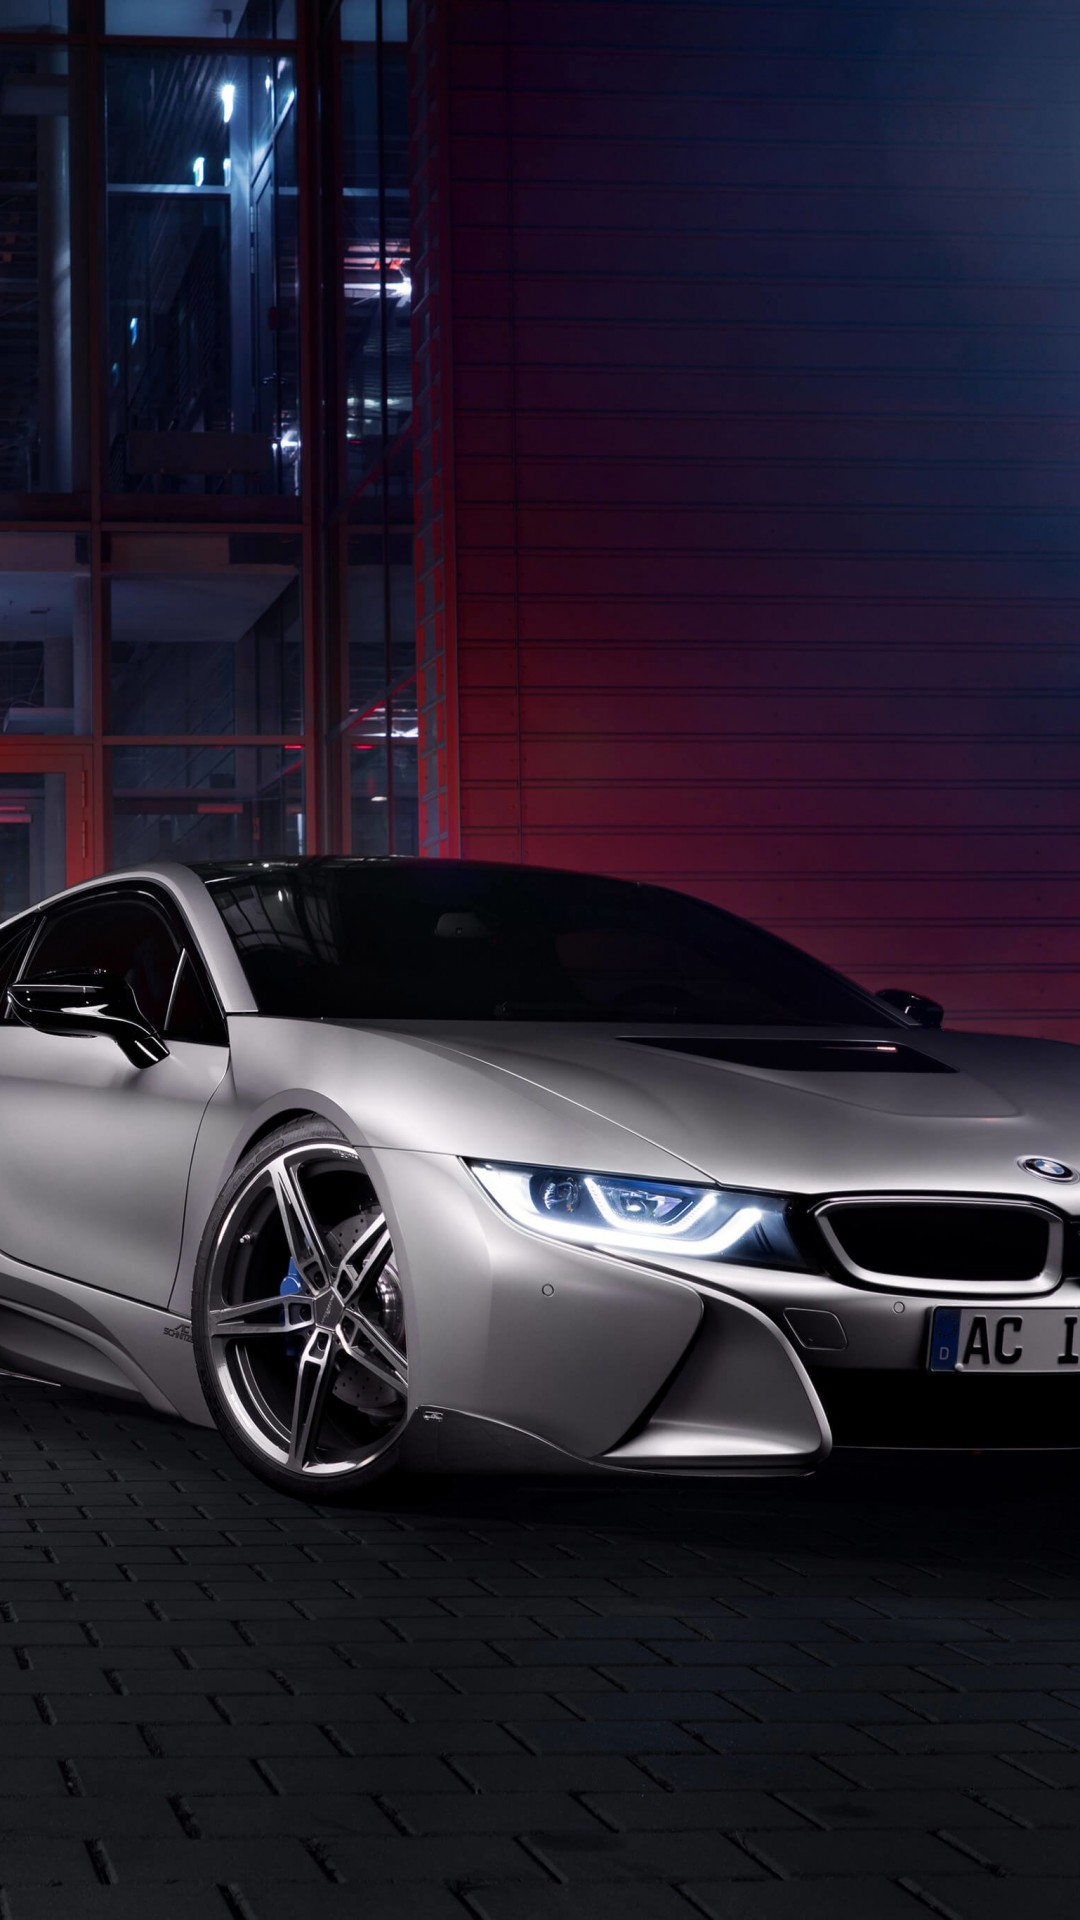 Download Bmw I8 Designed By Ac Schnitzer Hd Wallpaper For